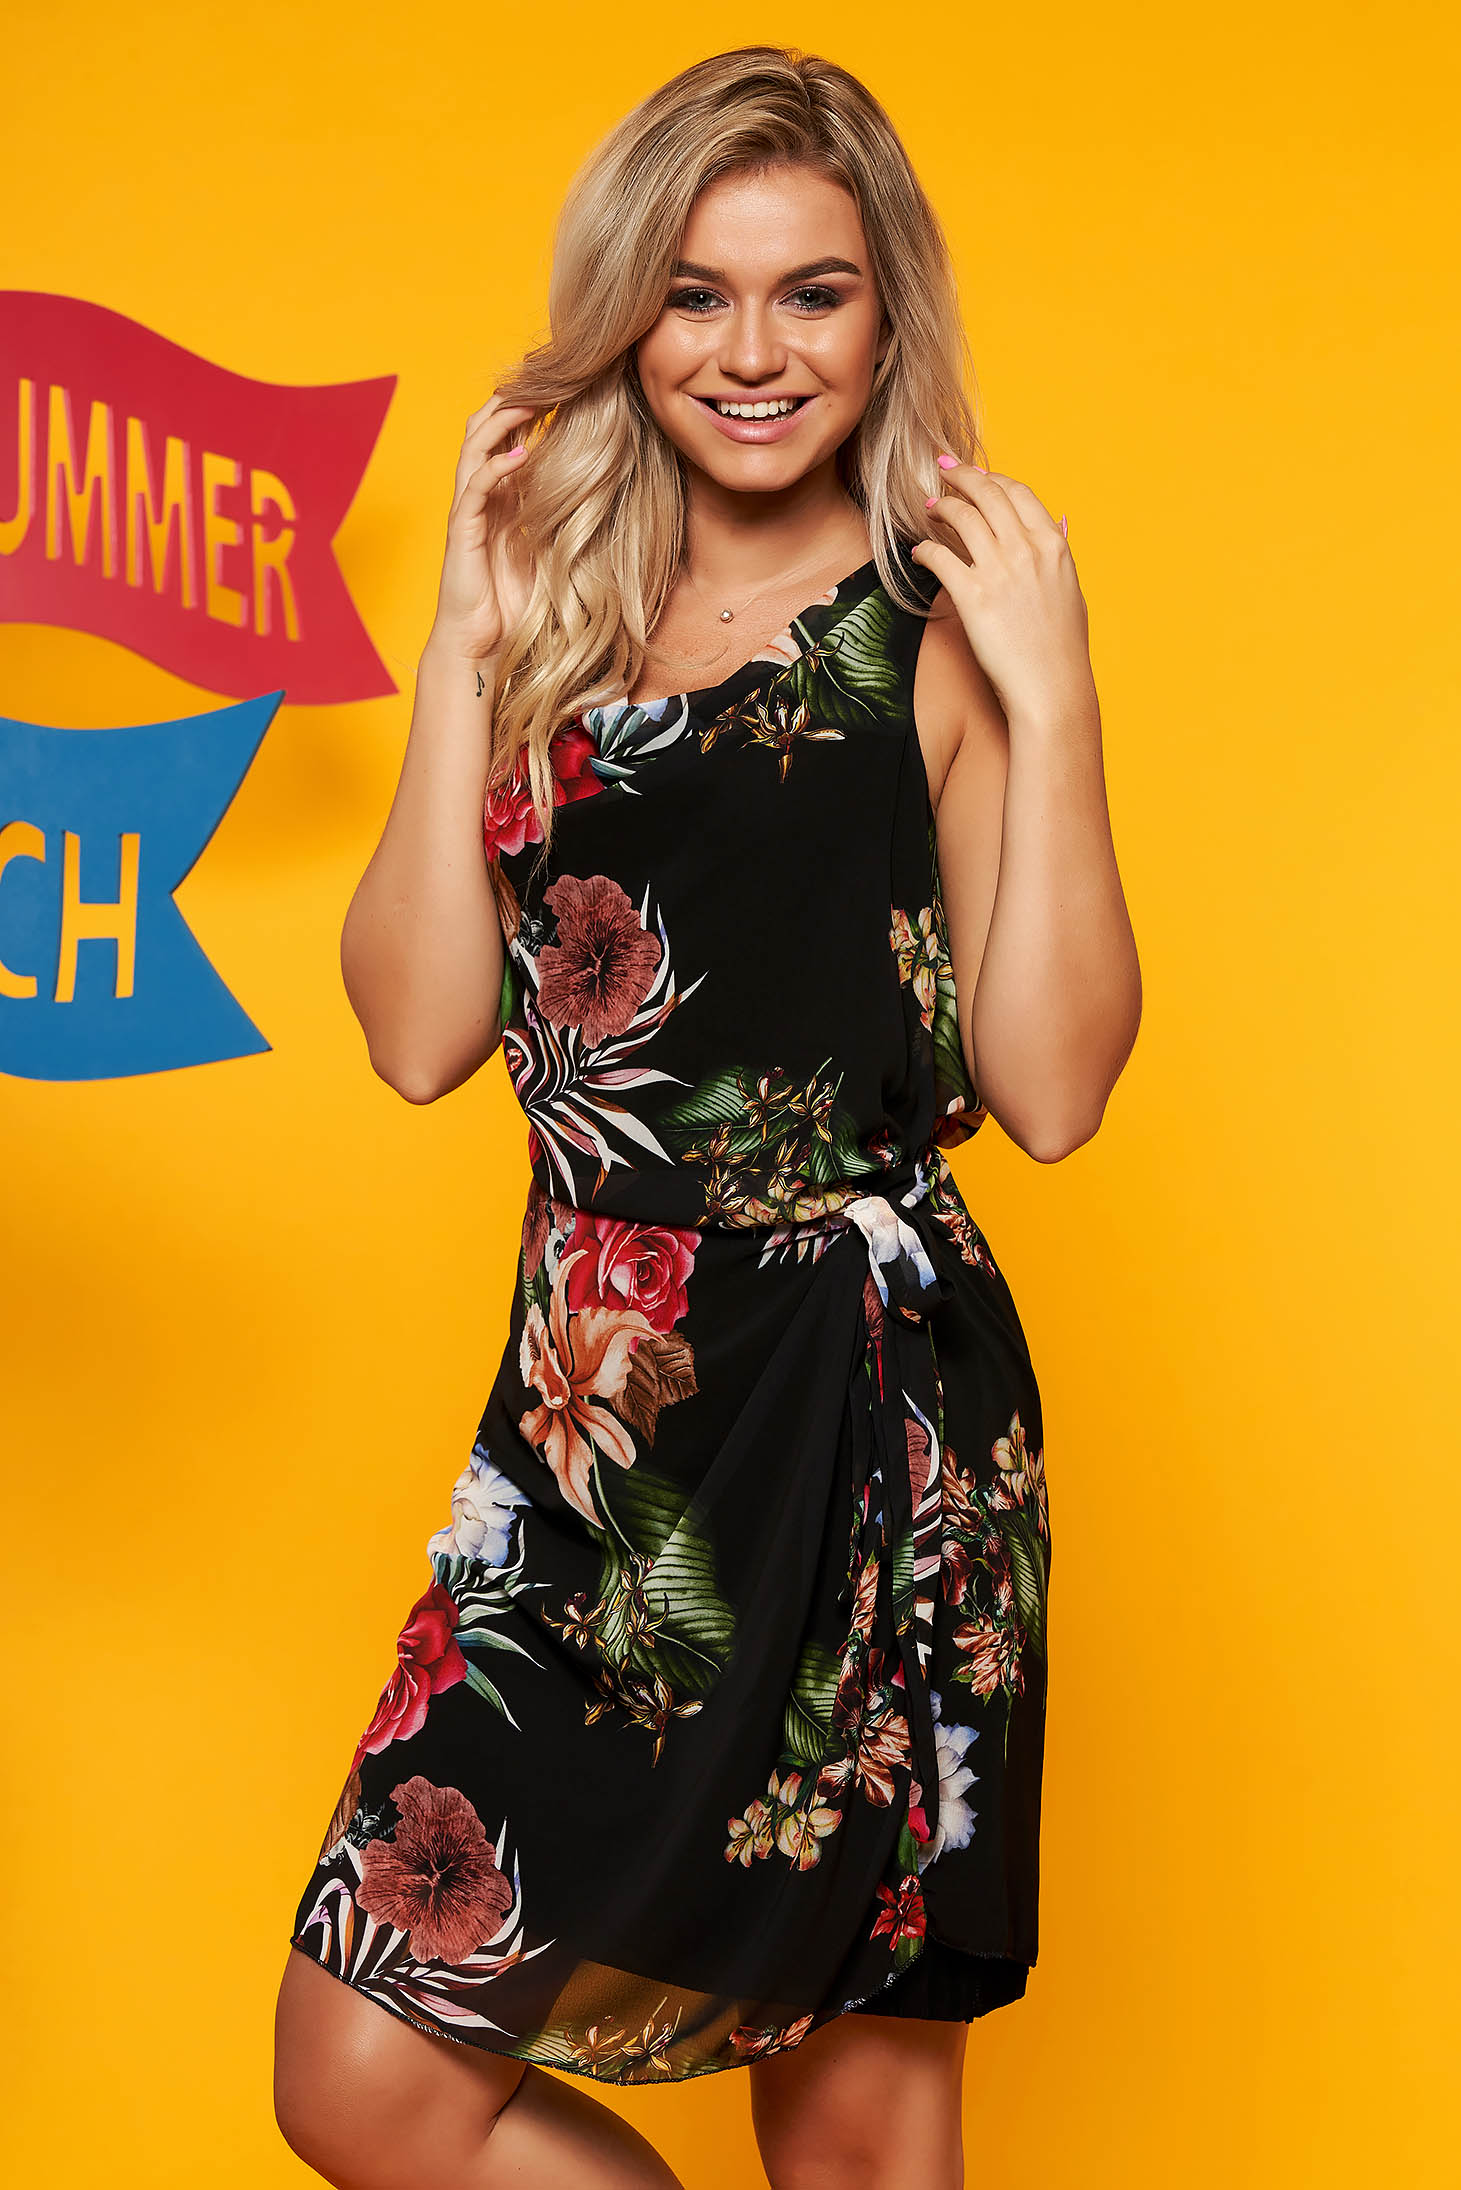 Black dress elegant daily from veil fabric accessorized with tied waistband with floral print